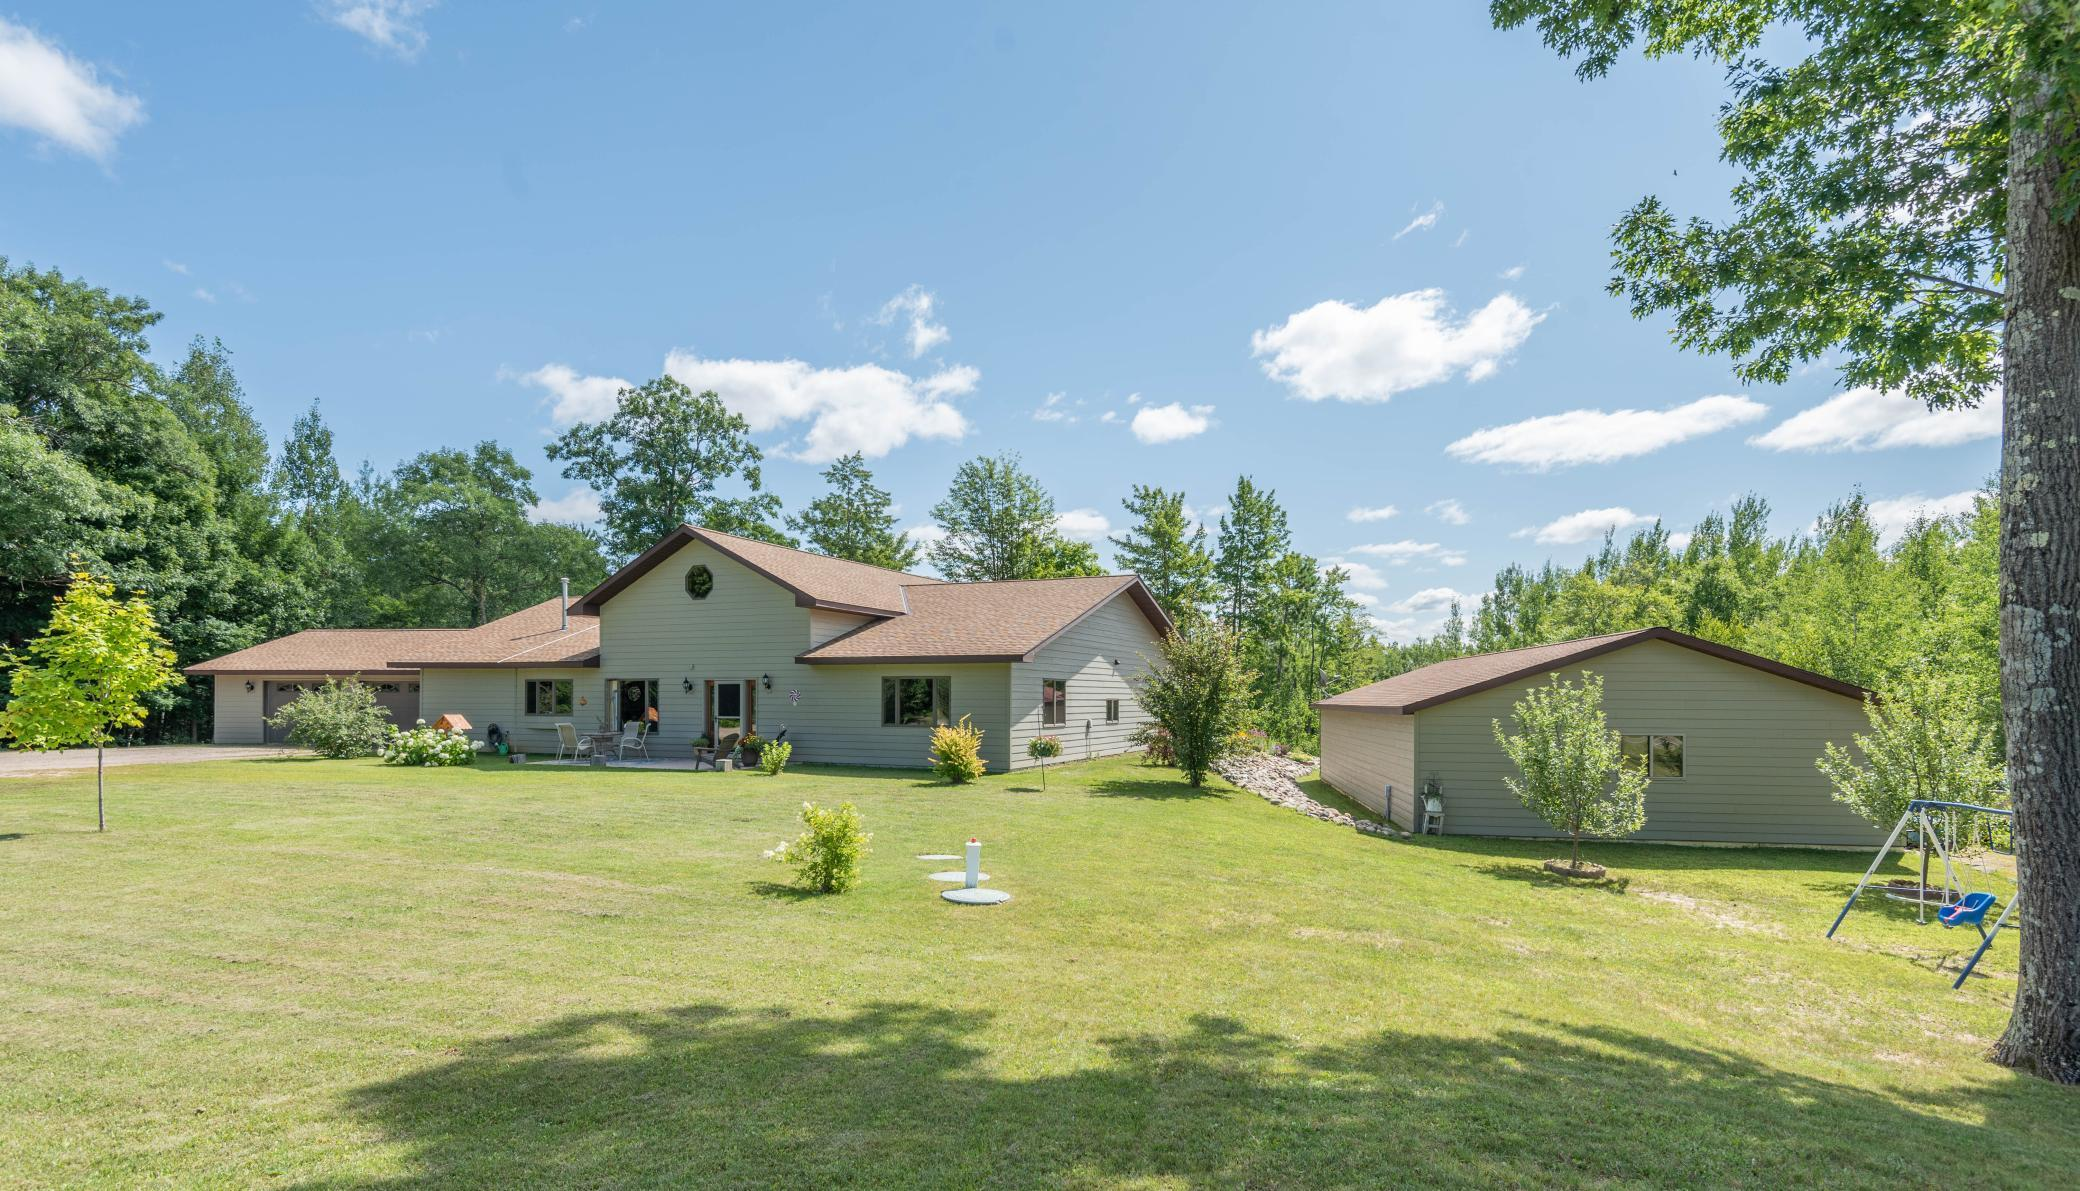 19608 S Crystal Springs Road Property Photo - Grand Rapids, MN real estate listing